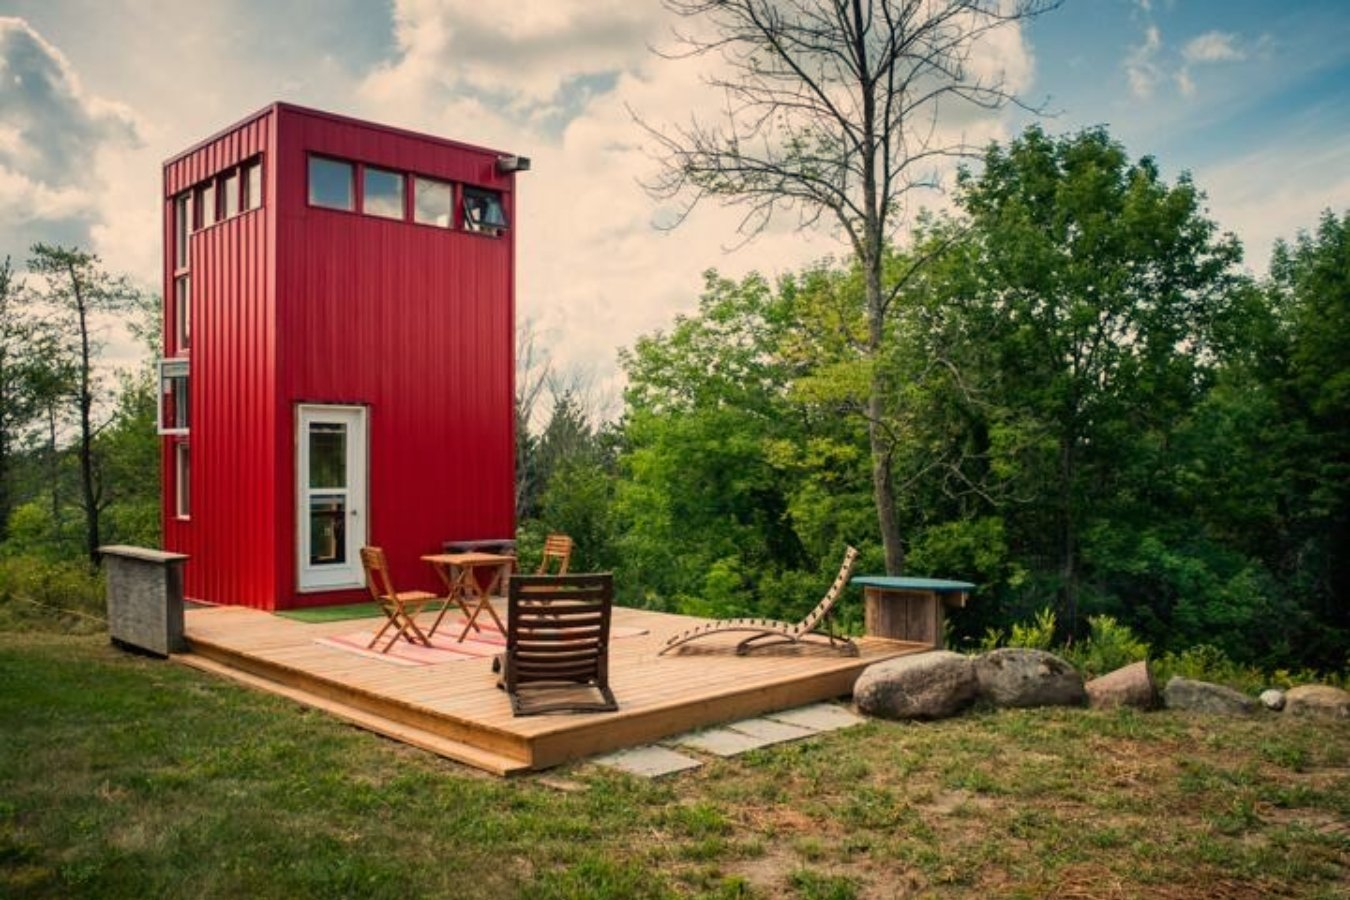 27 Tiny Houses in Canada You Can Rent on Airbnb in 2021!